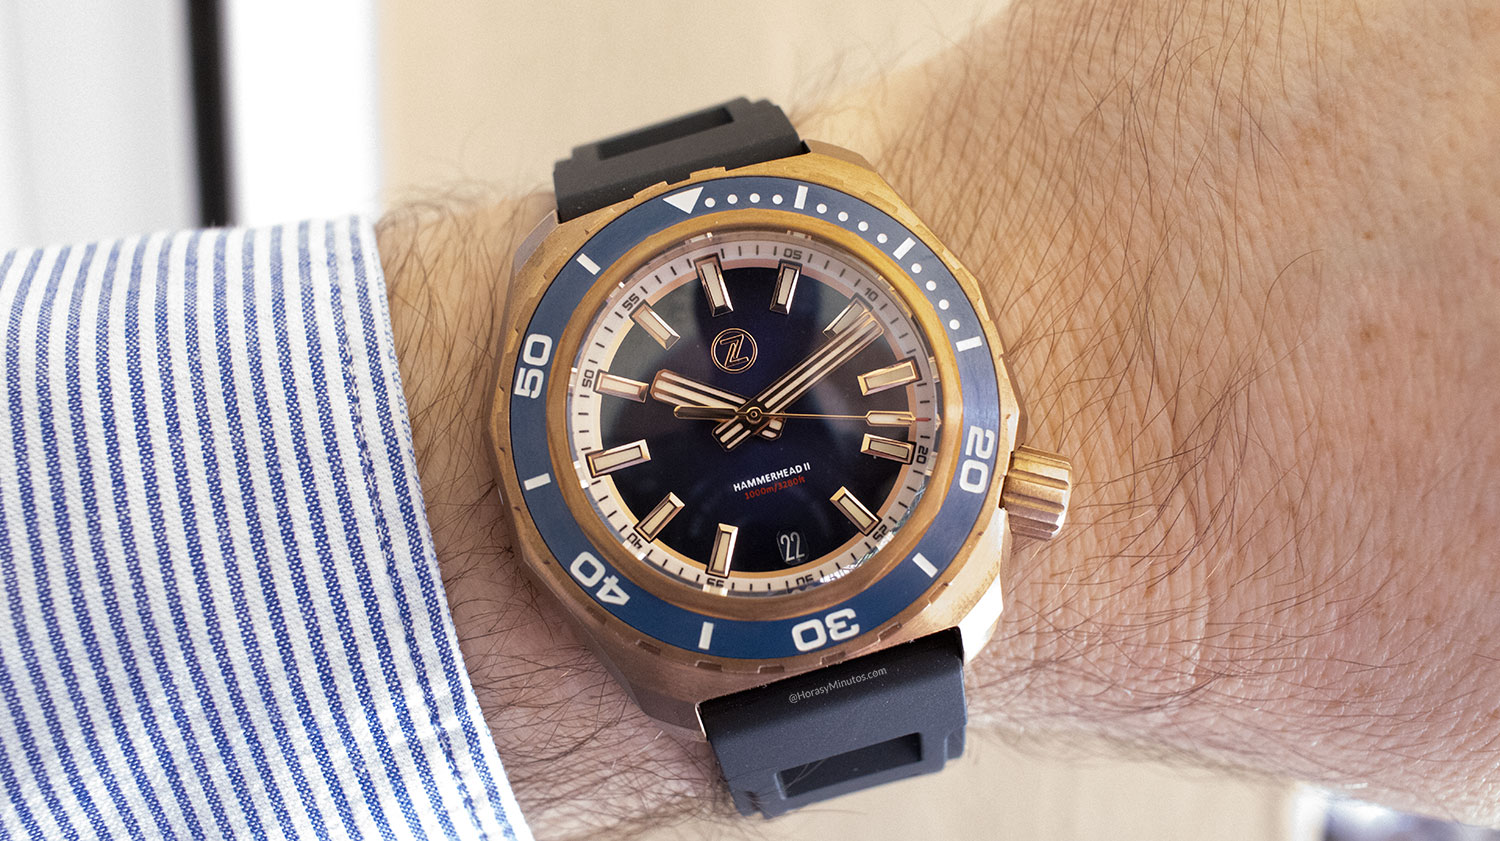 El Super-LumiNova en el Zelos Watches Hammerhead 1000 M Bronze Midnight Blue, en la muñeca